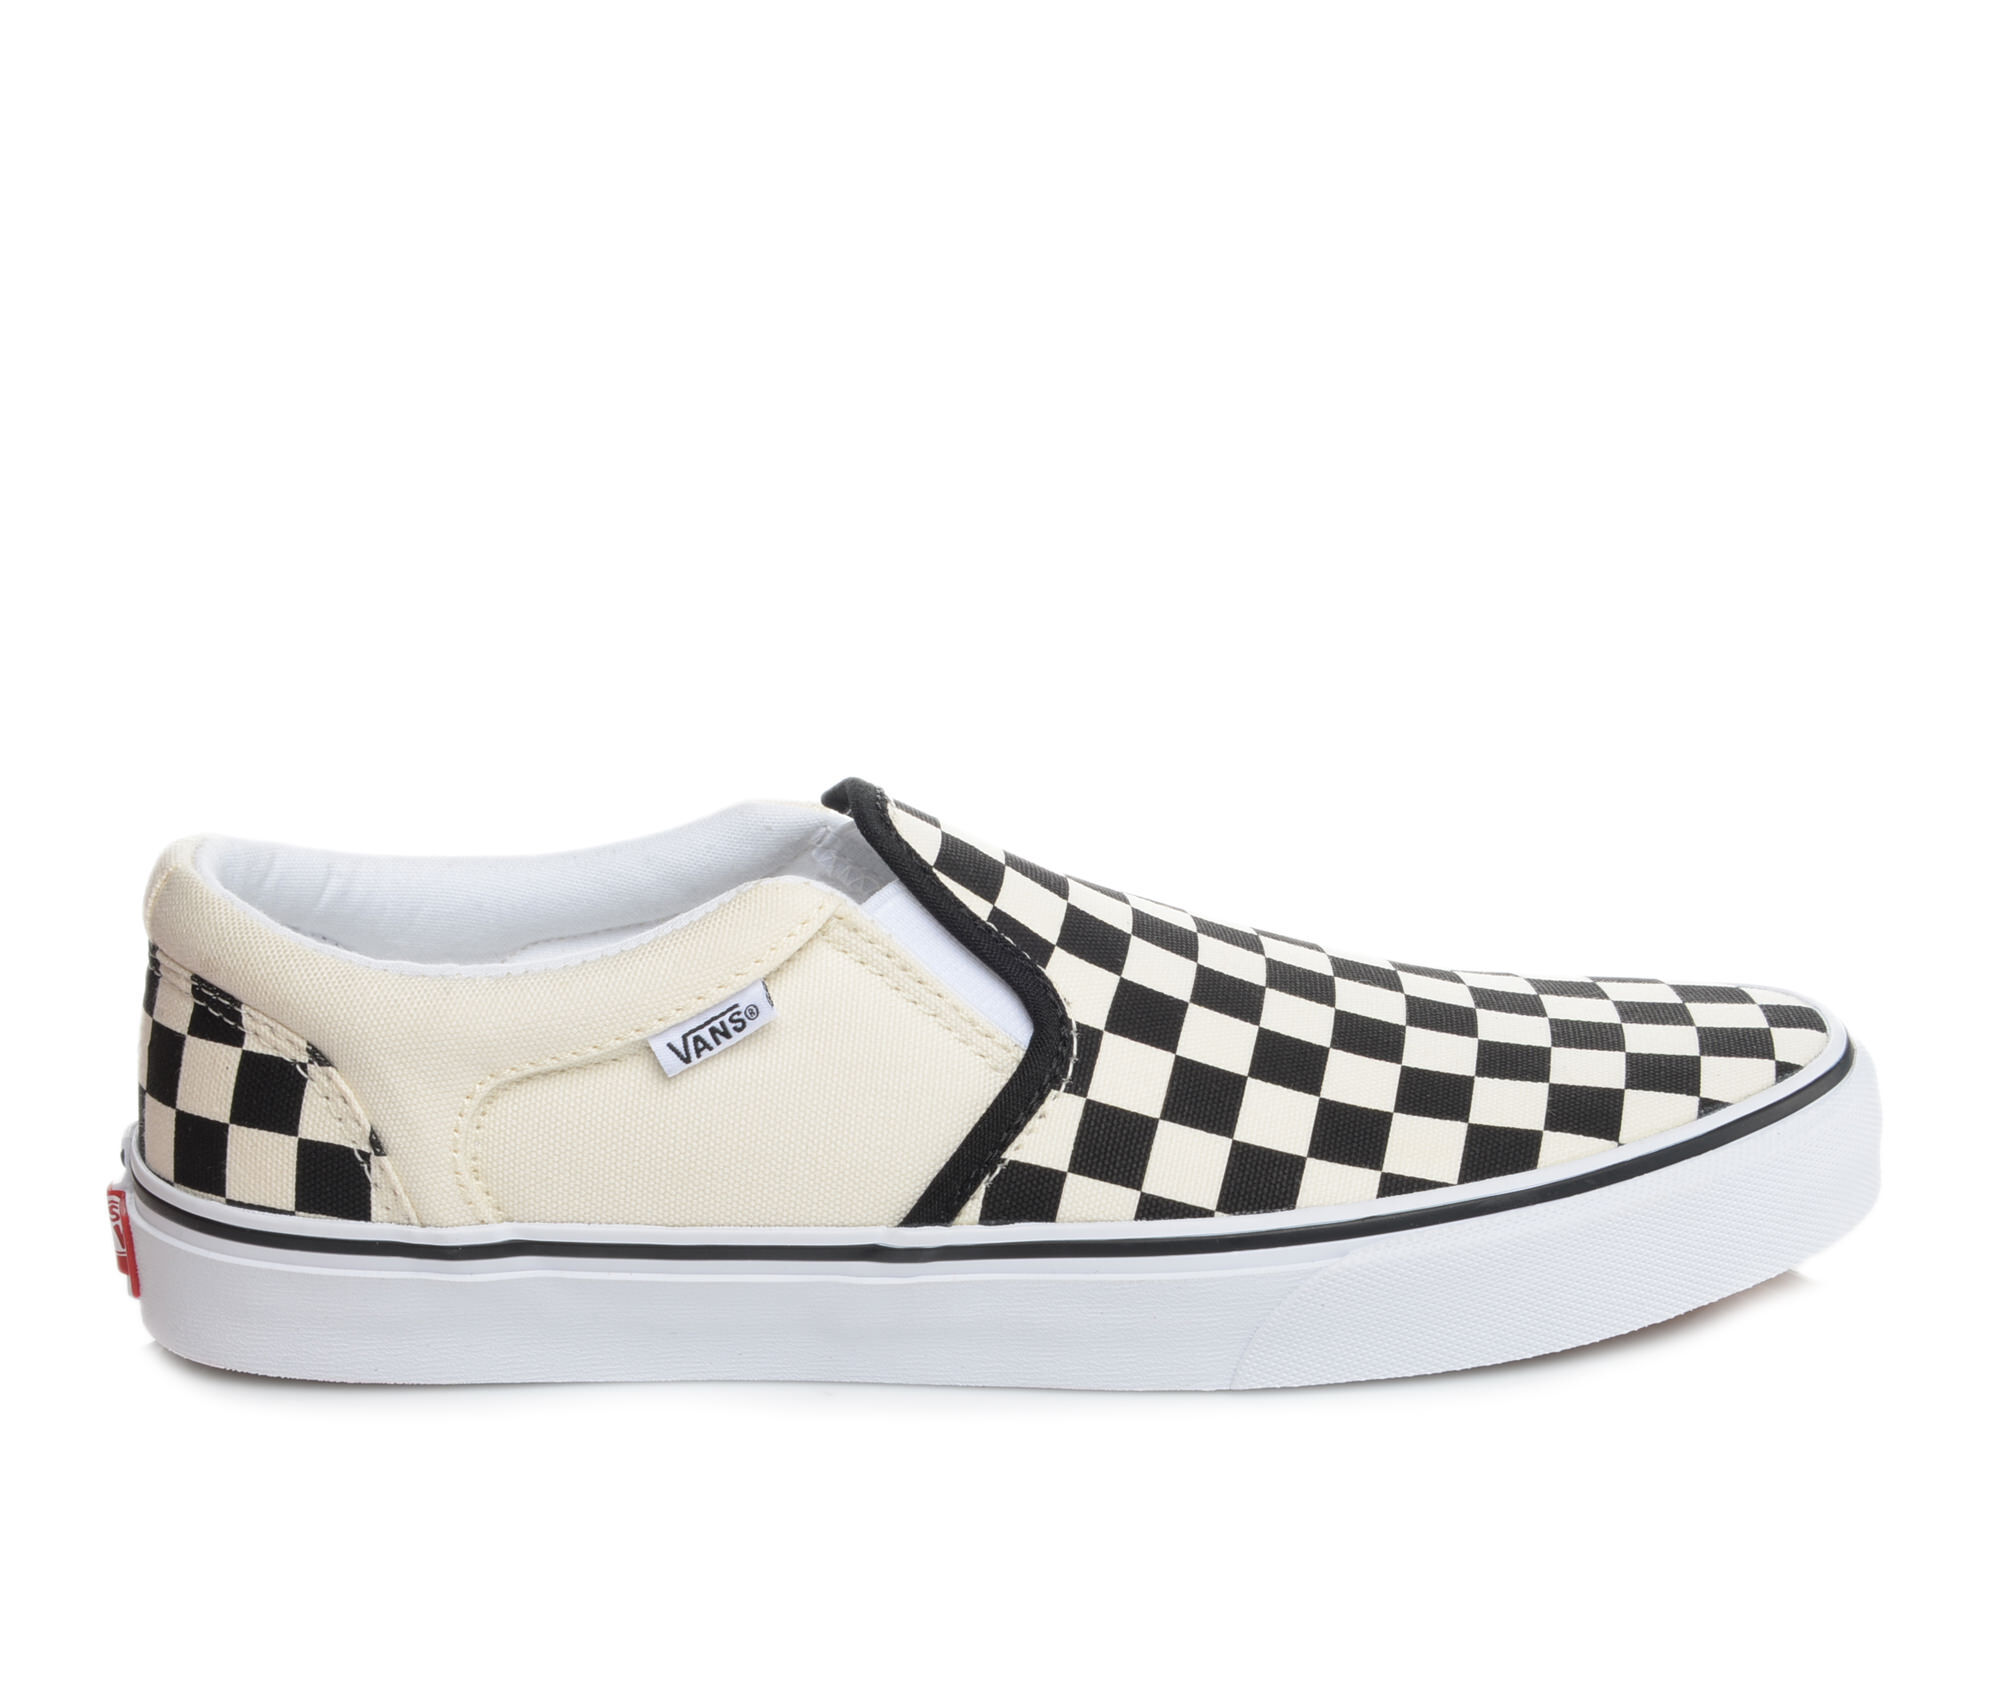 Men's Vans Asher Slip-On Skate Shoes Blk/Crm Checker